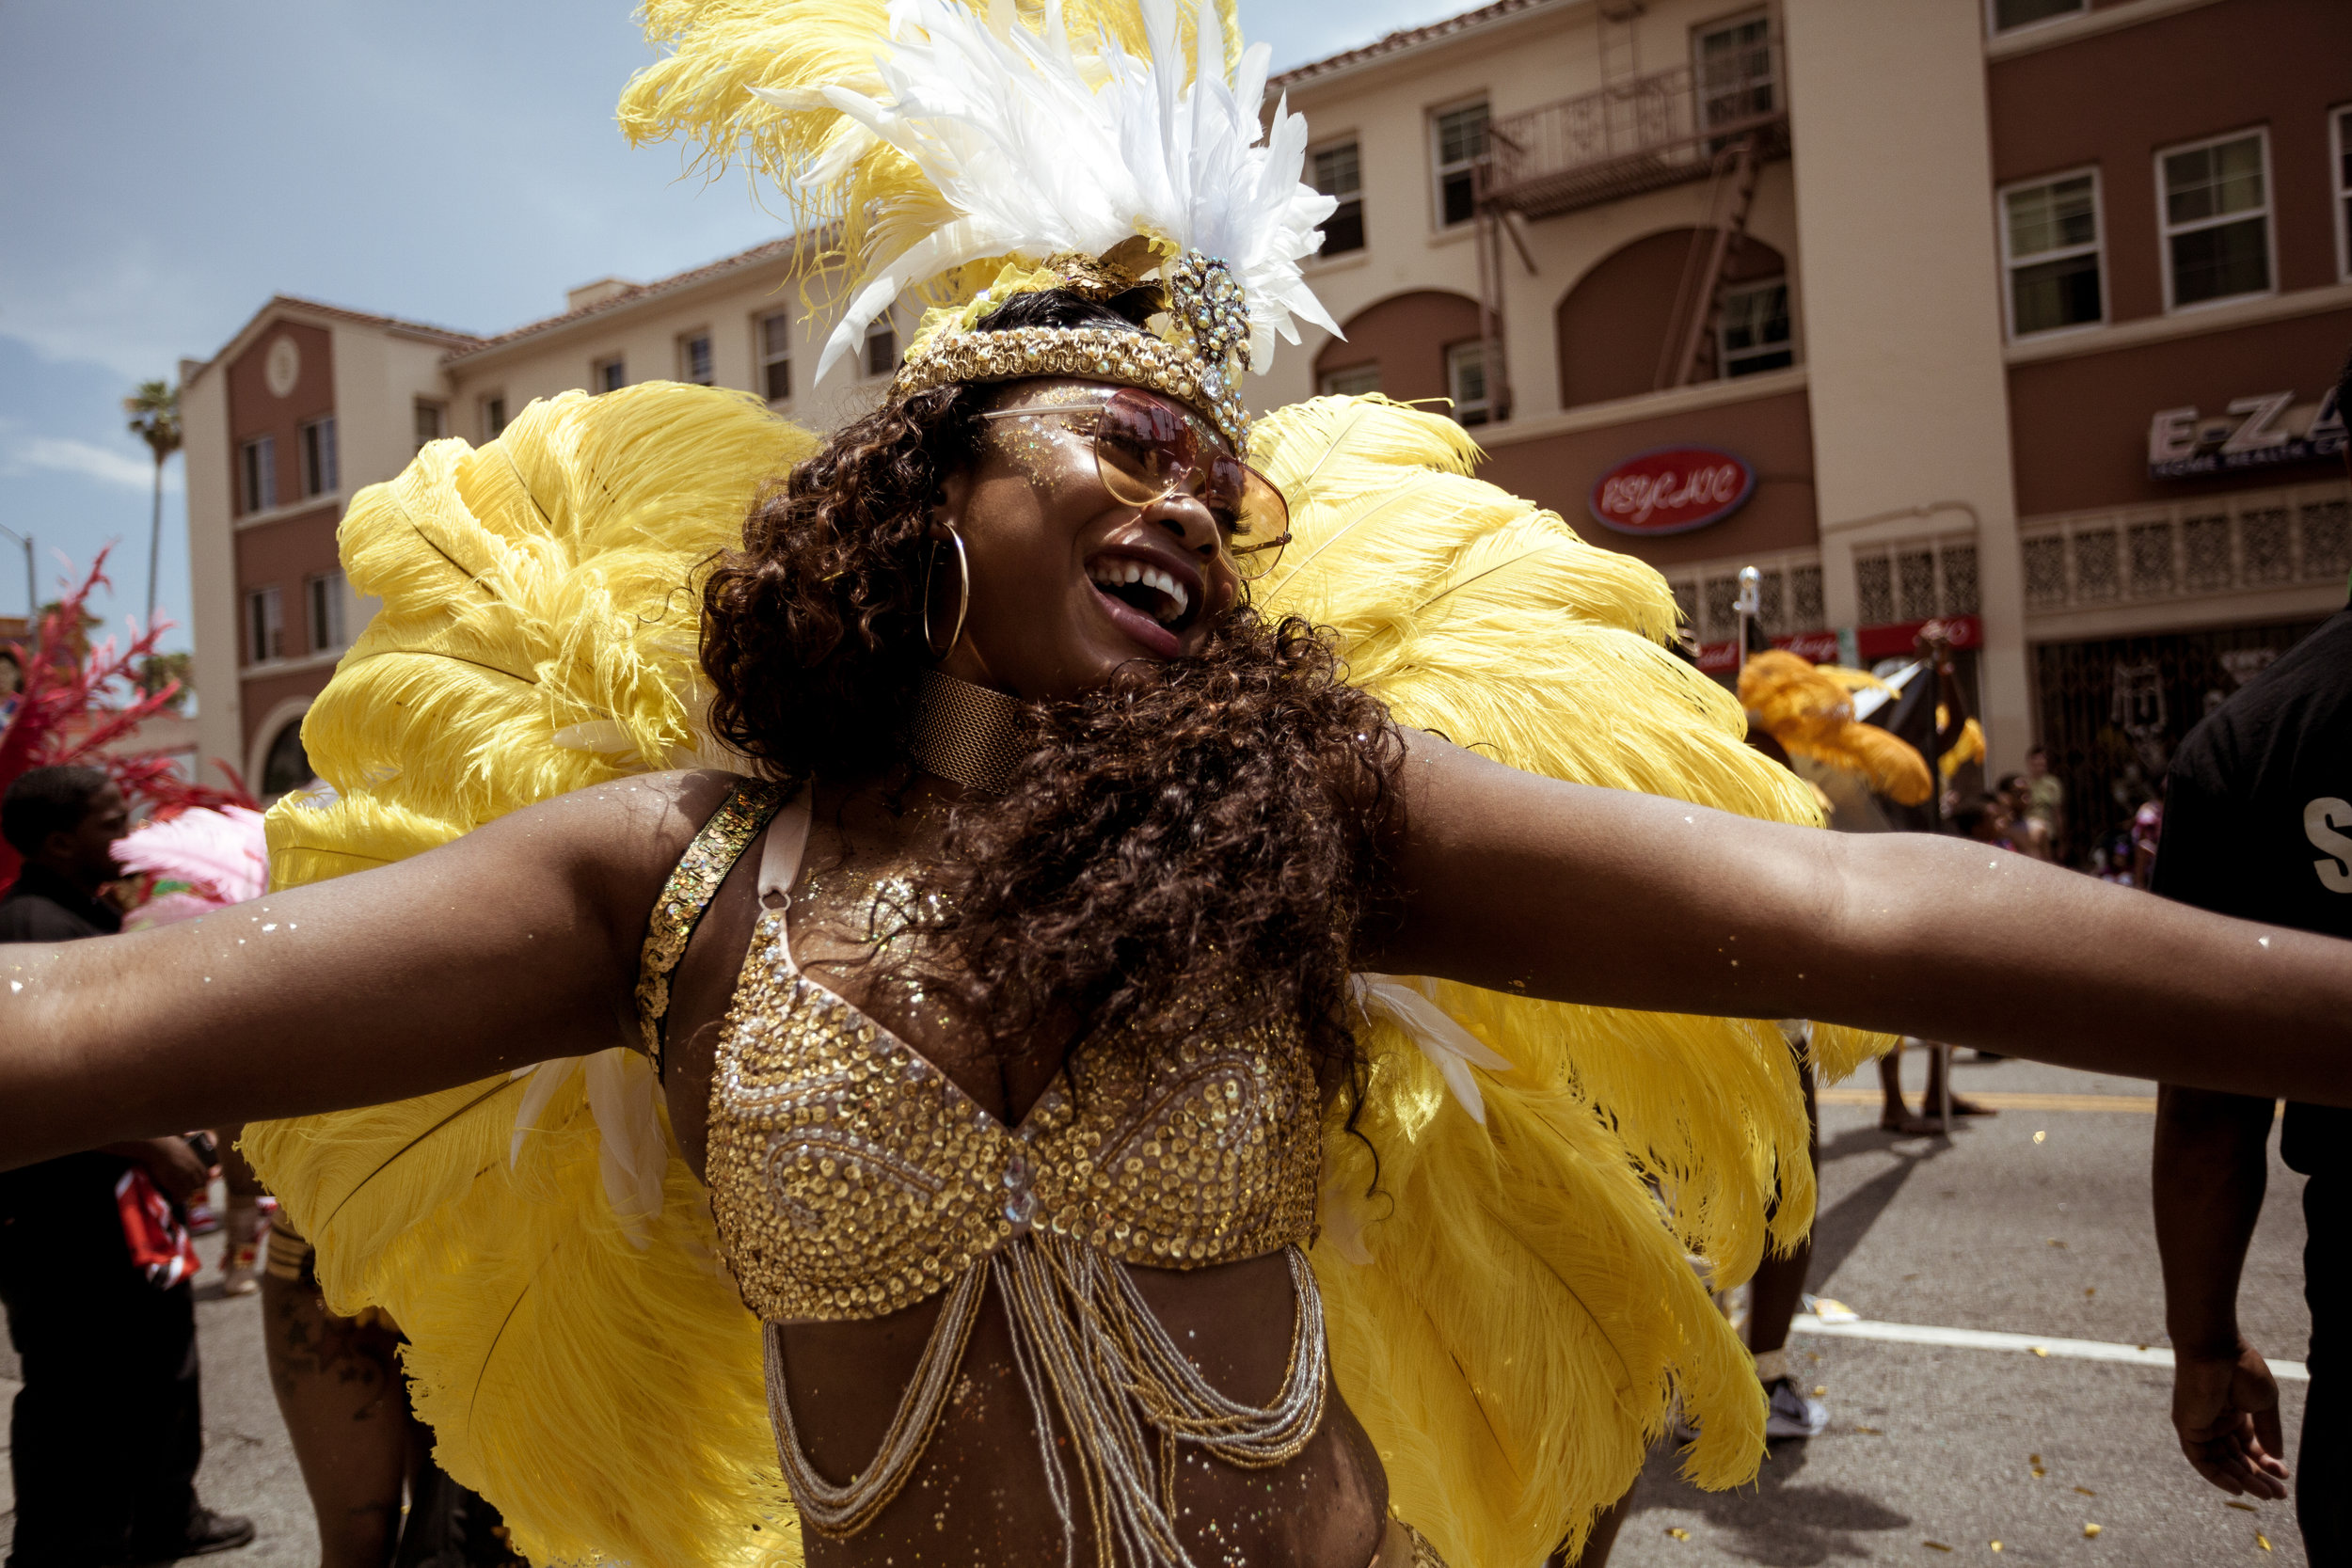 Chacon Images_Carnaval_Print-5889.jpg